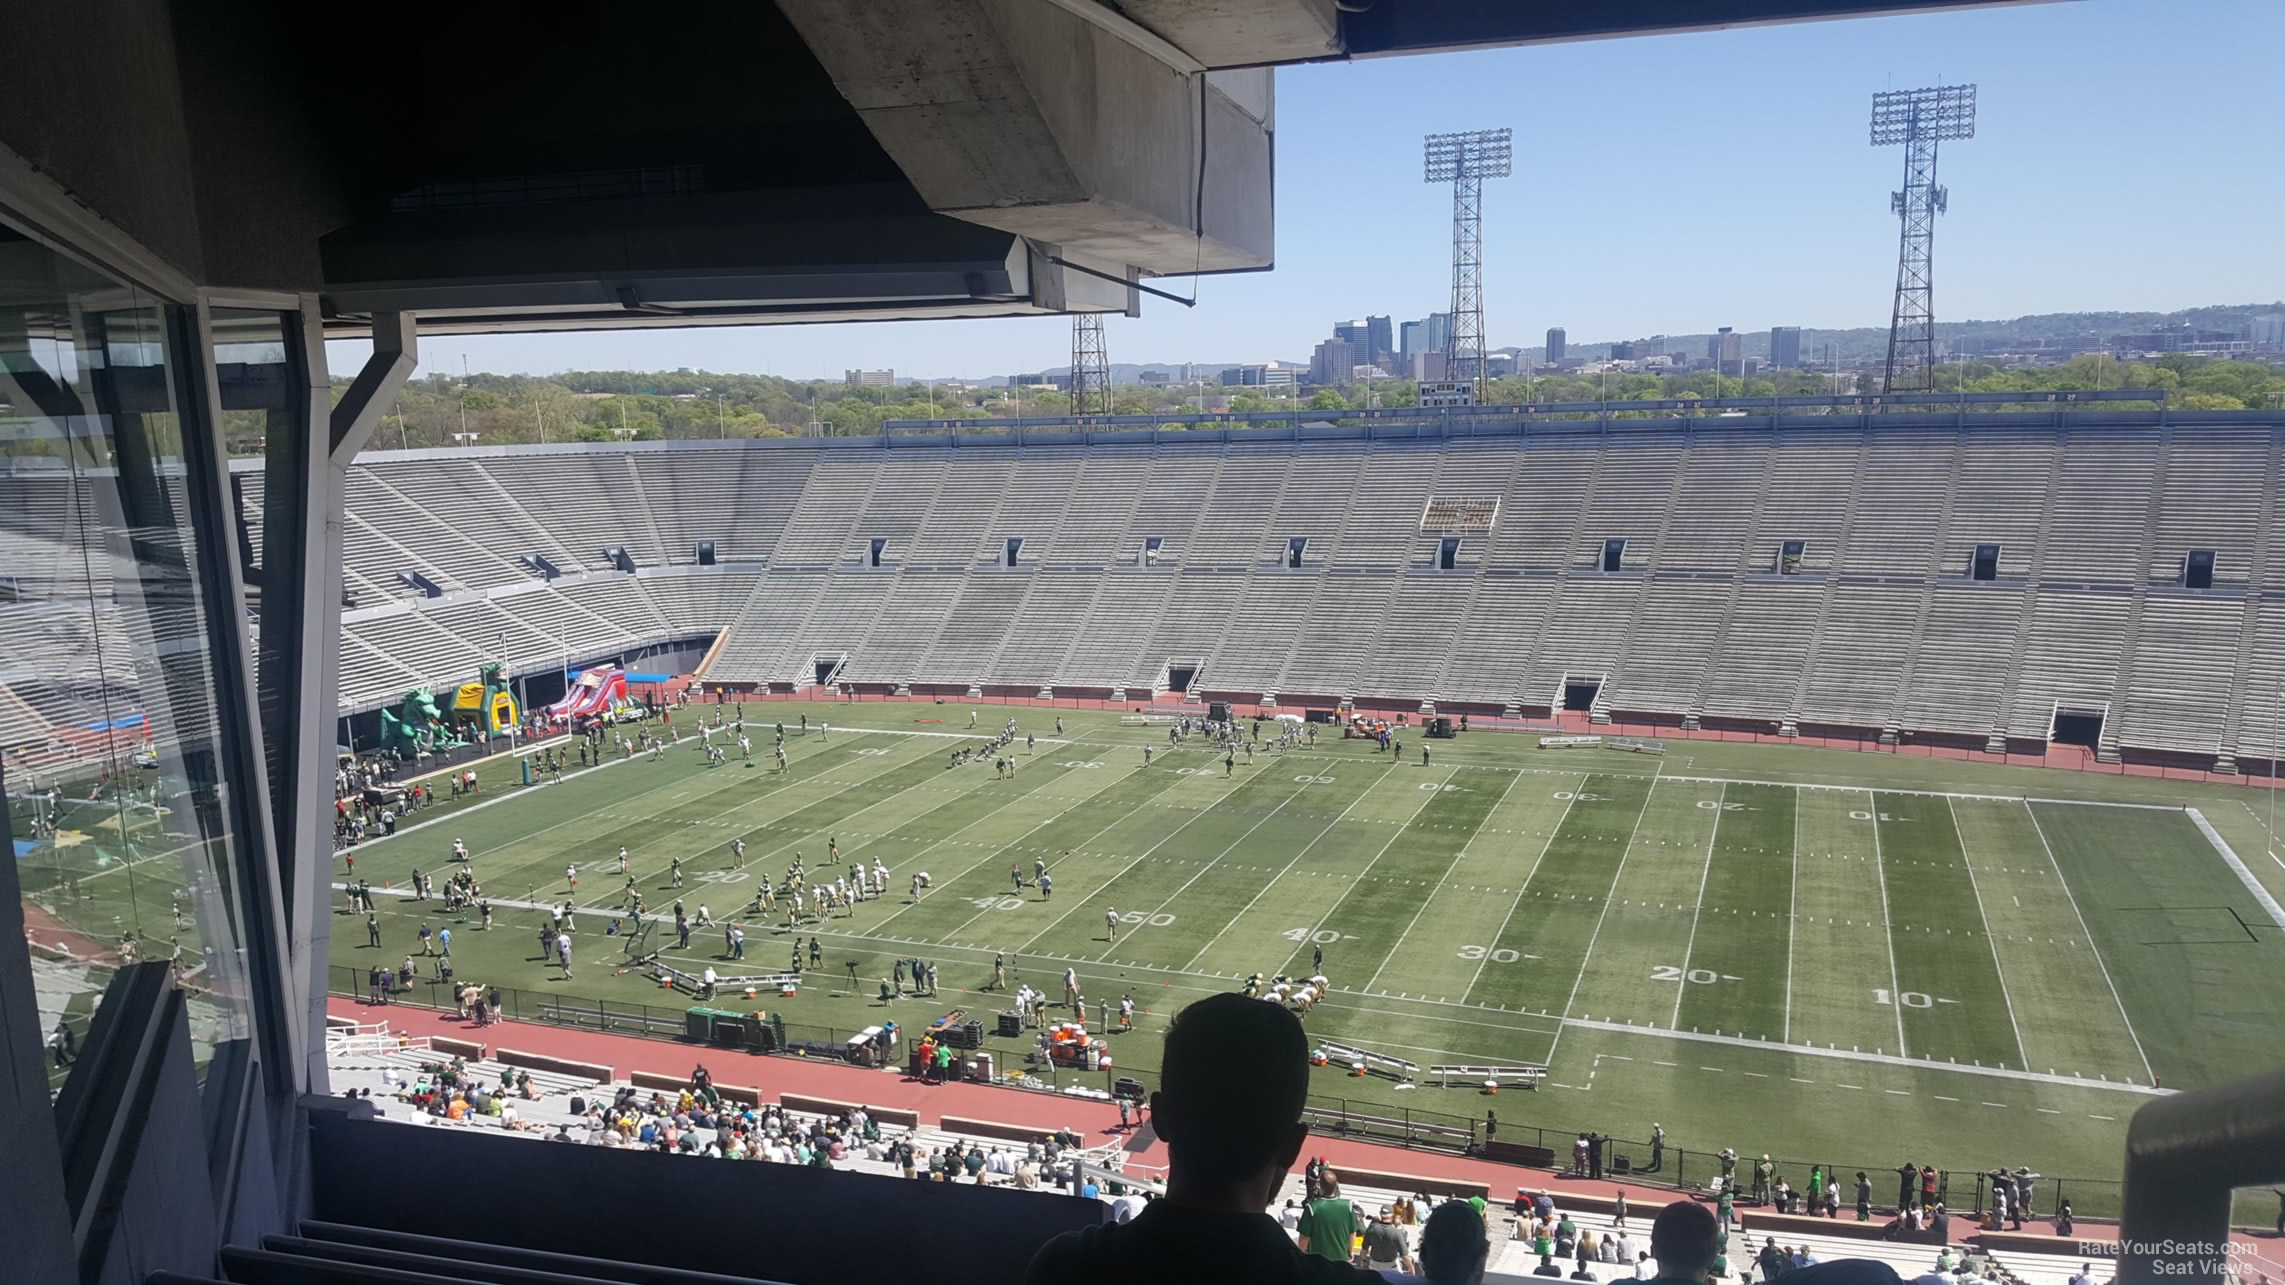 Section 9U1 seat view